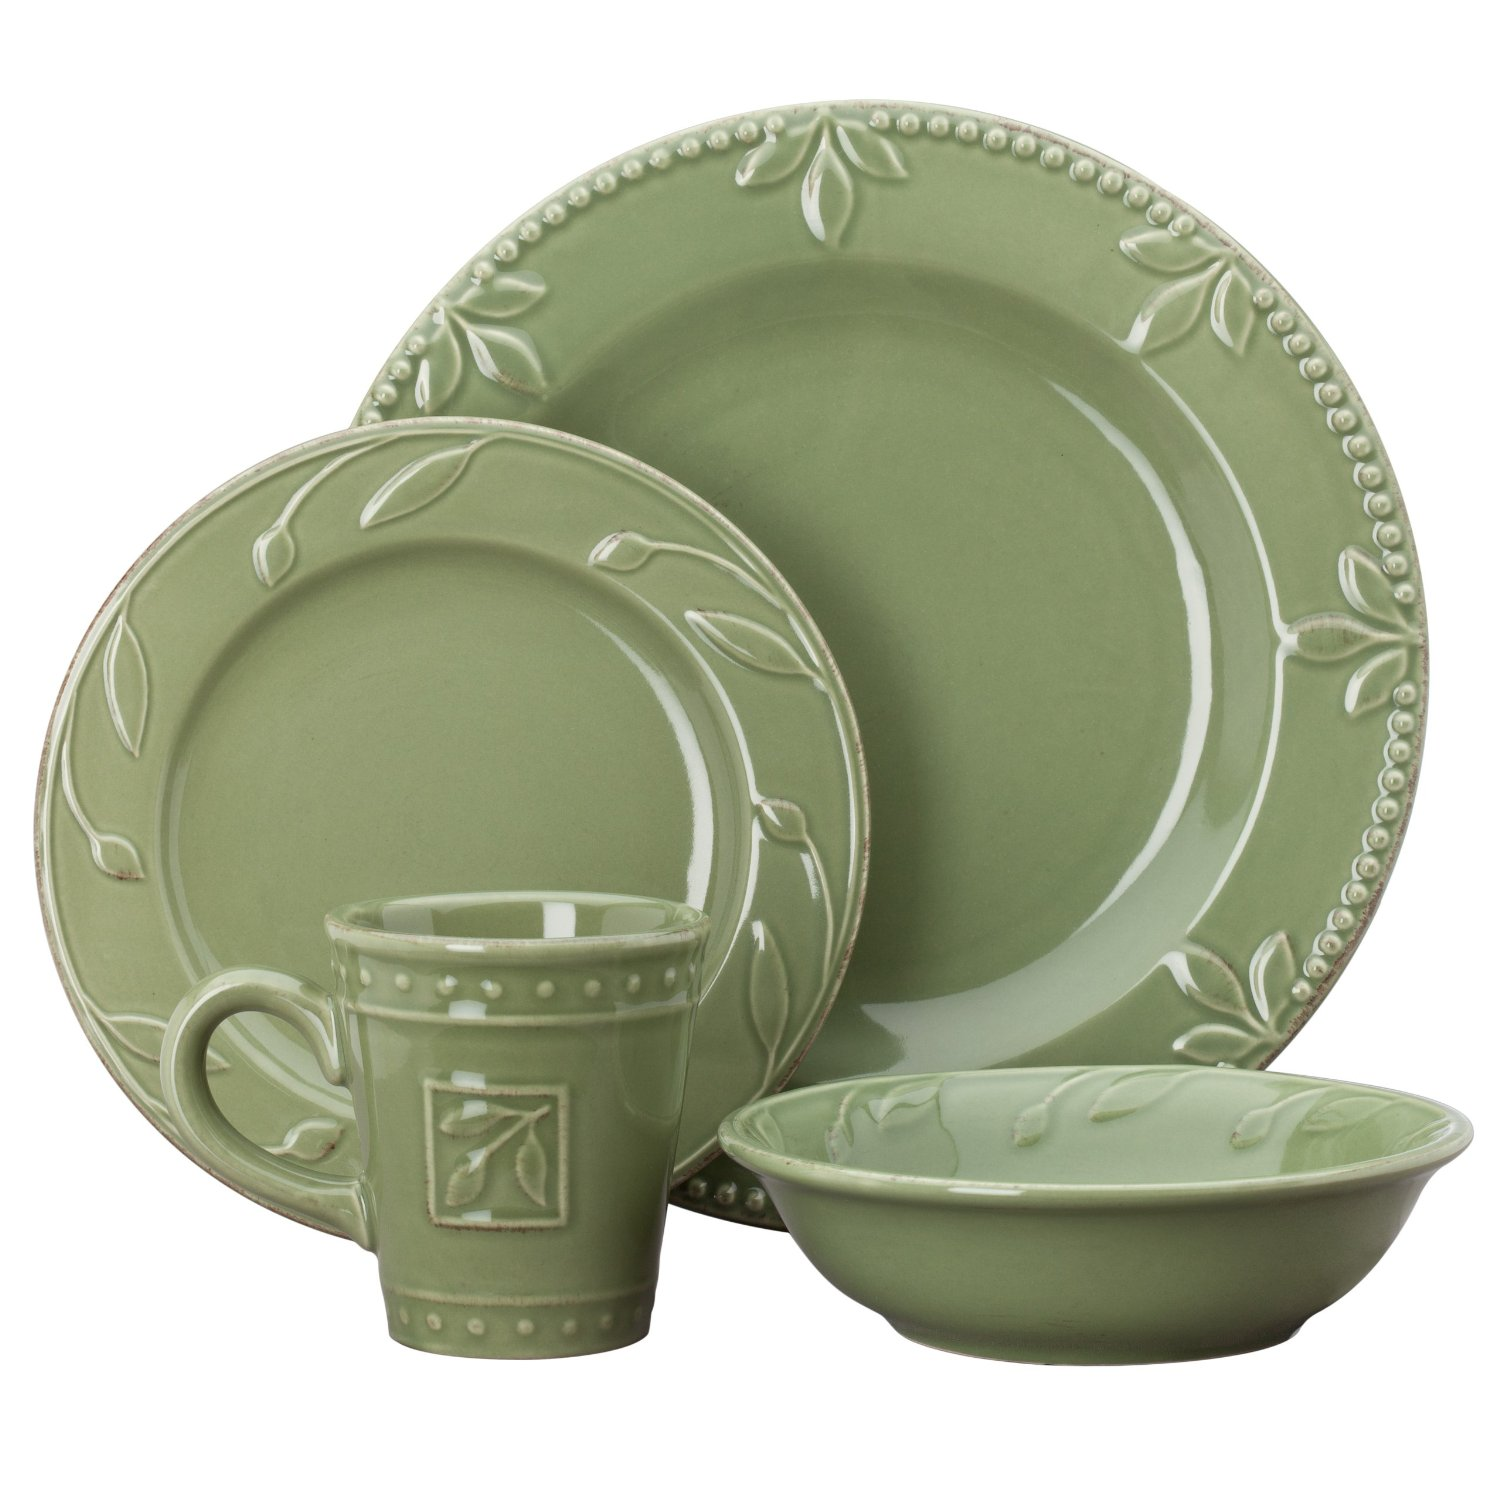 Breathtaking stoneware dishes for kitchen and dining sets ideas with stoneware dishes made in usa